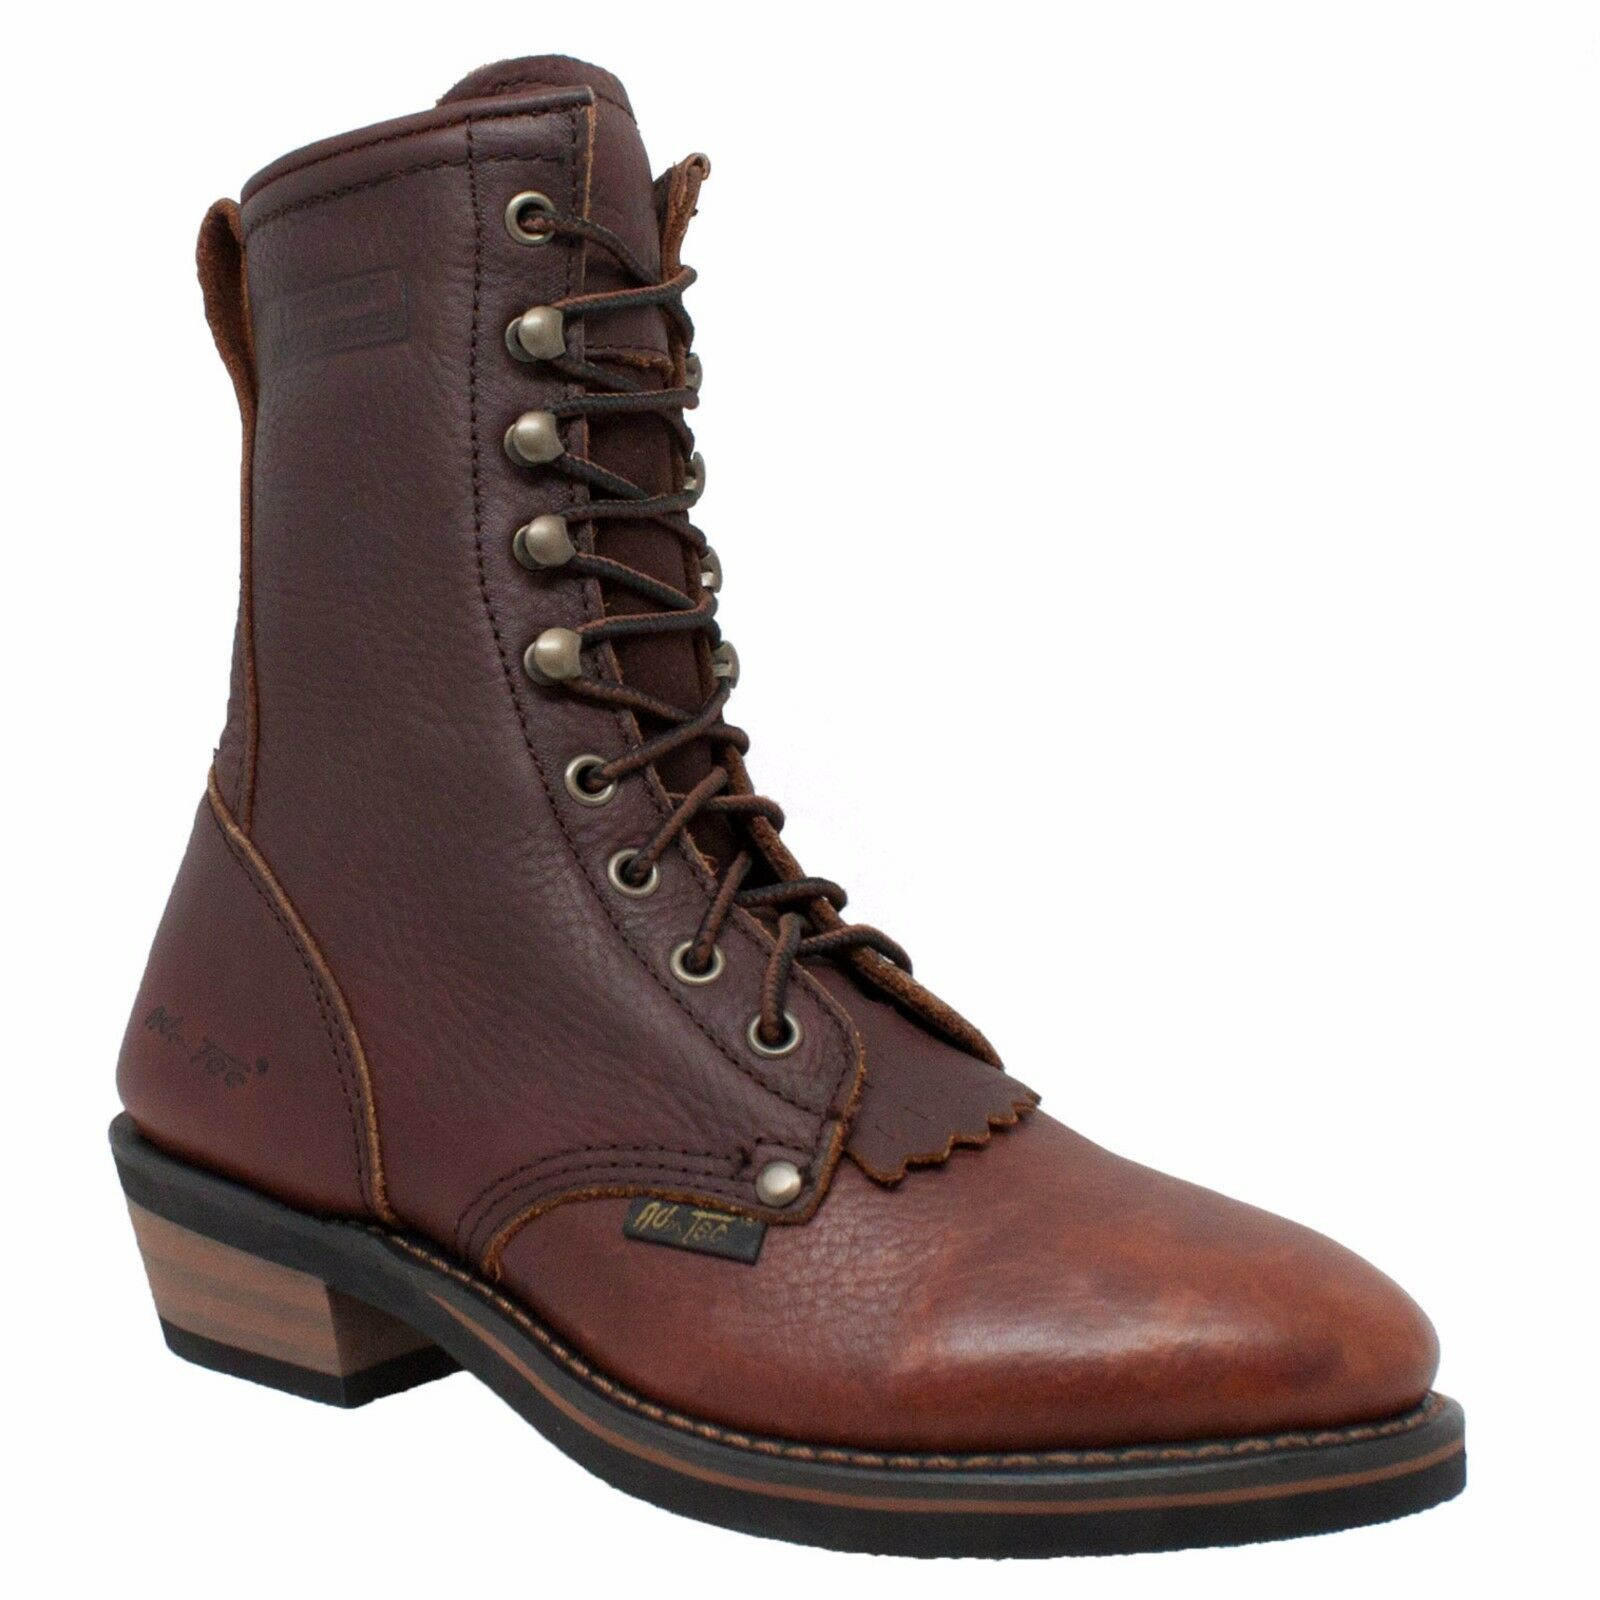 2173 AdTec Chestnut, Women's 8'' Packer Chestnut, Western Boot